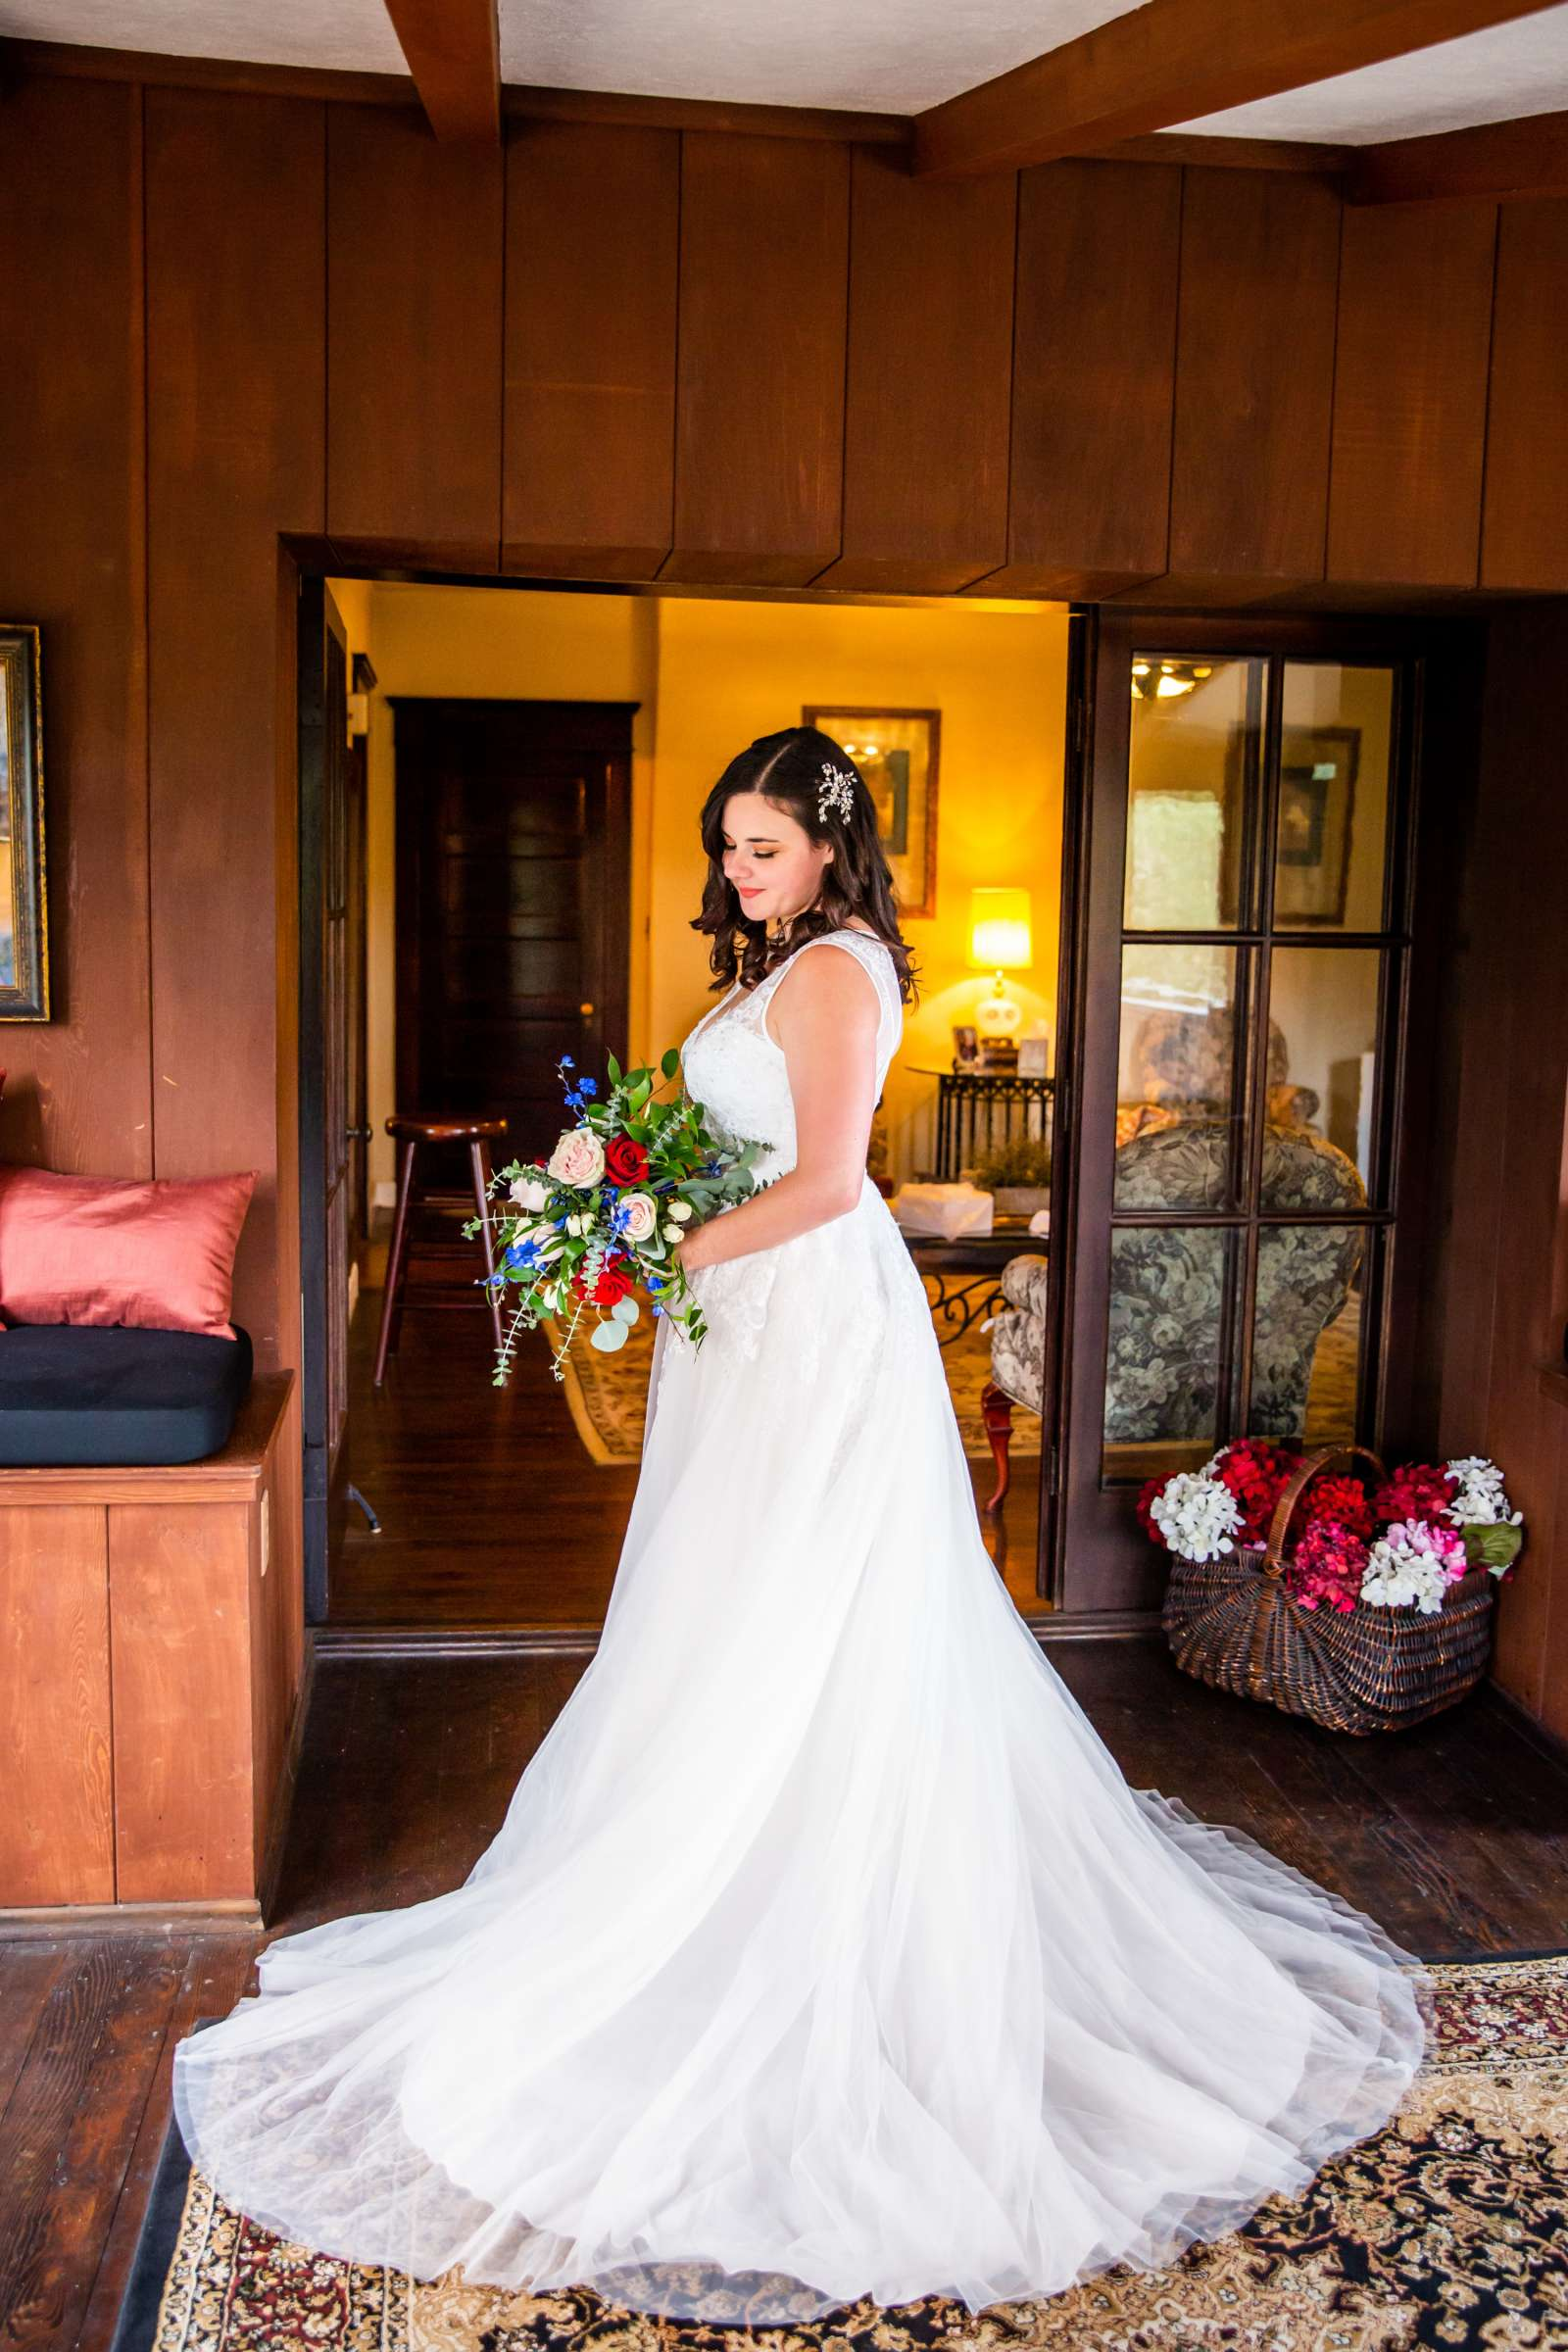 Mt Woodson Castle Wedding, Valerie and Ian Wedding Photo #43 by True Photography